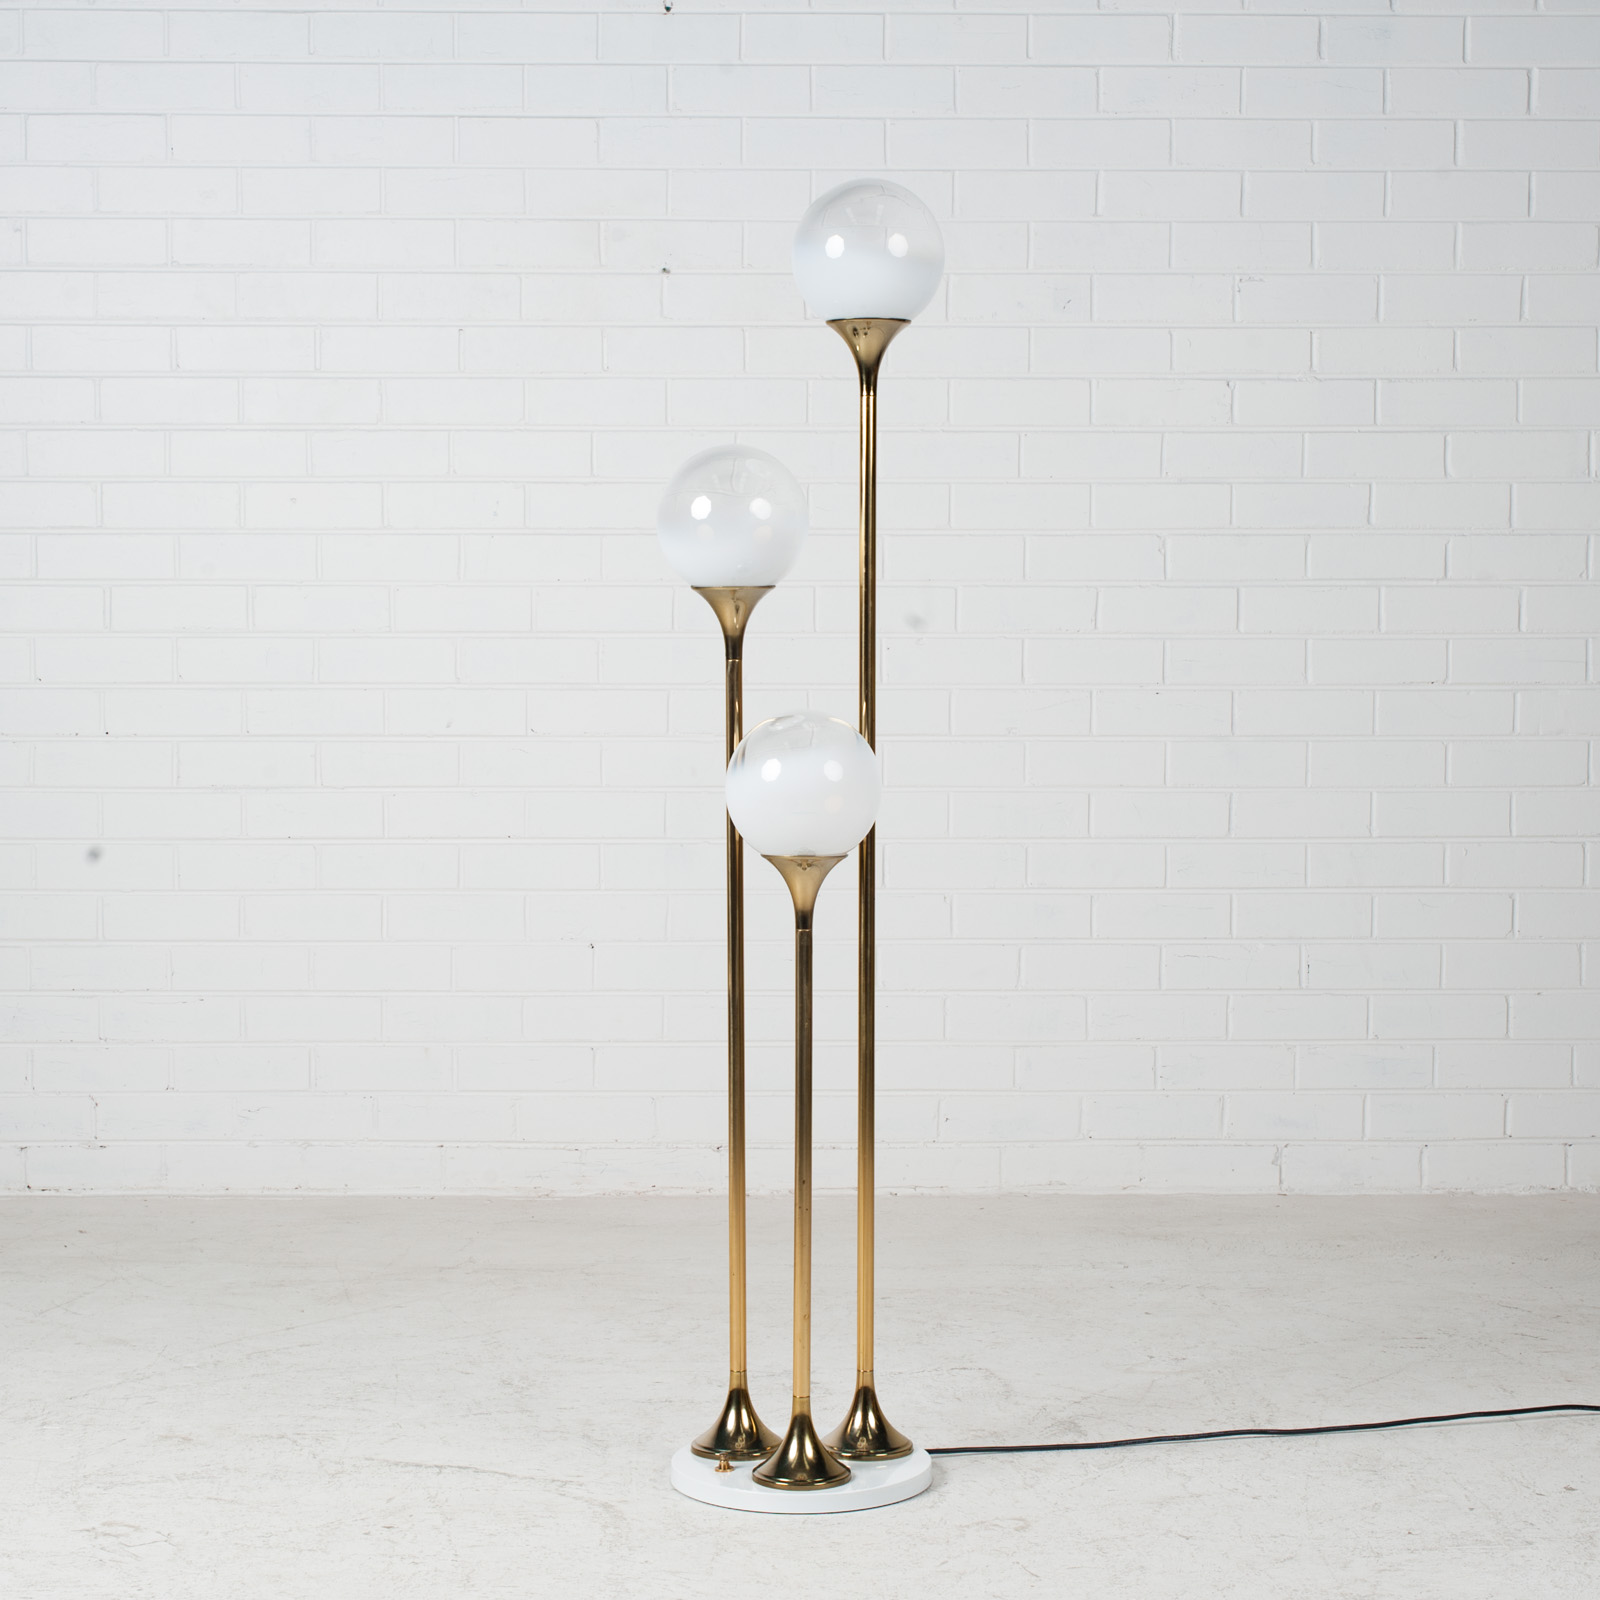 Brass Floor Lamp By Targetti Sankey 1960s Italy 02